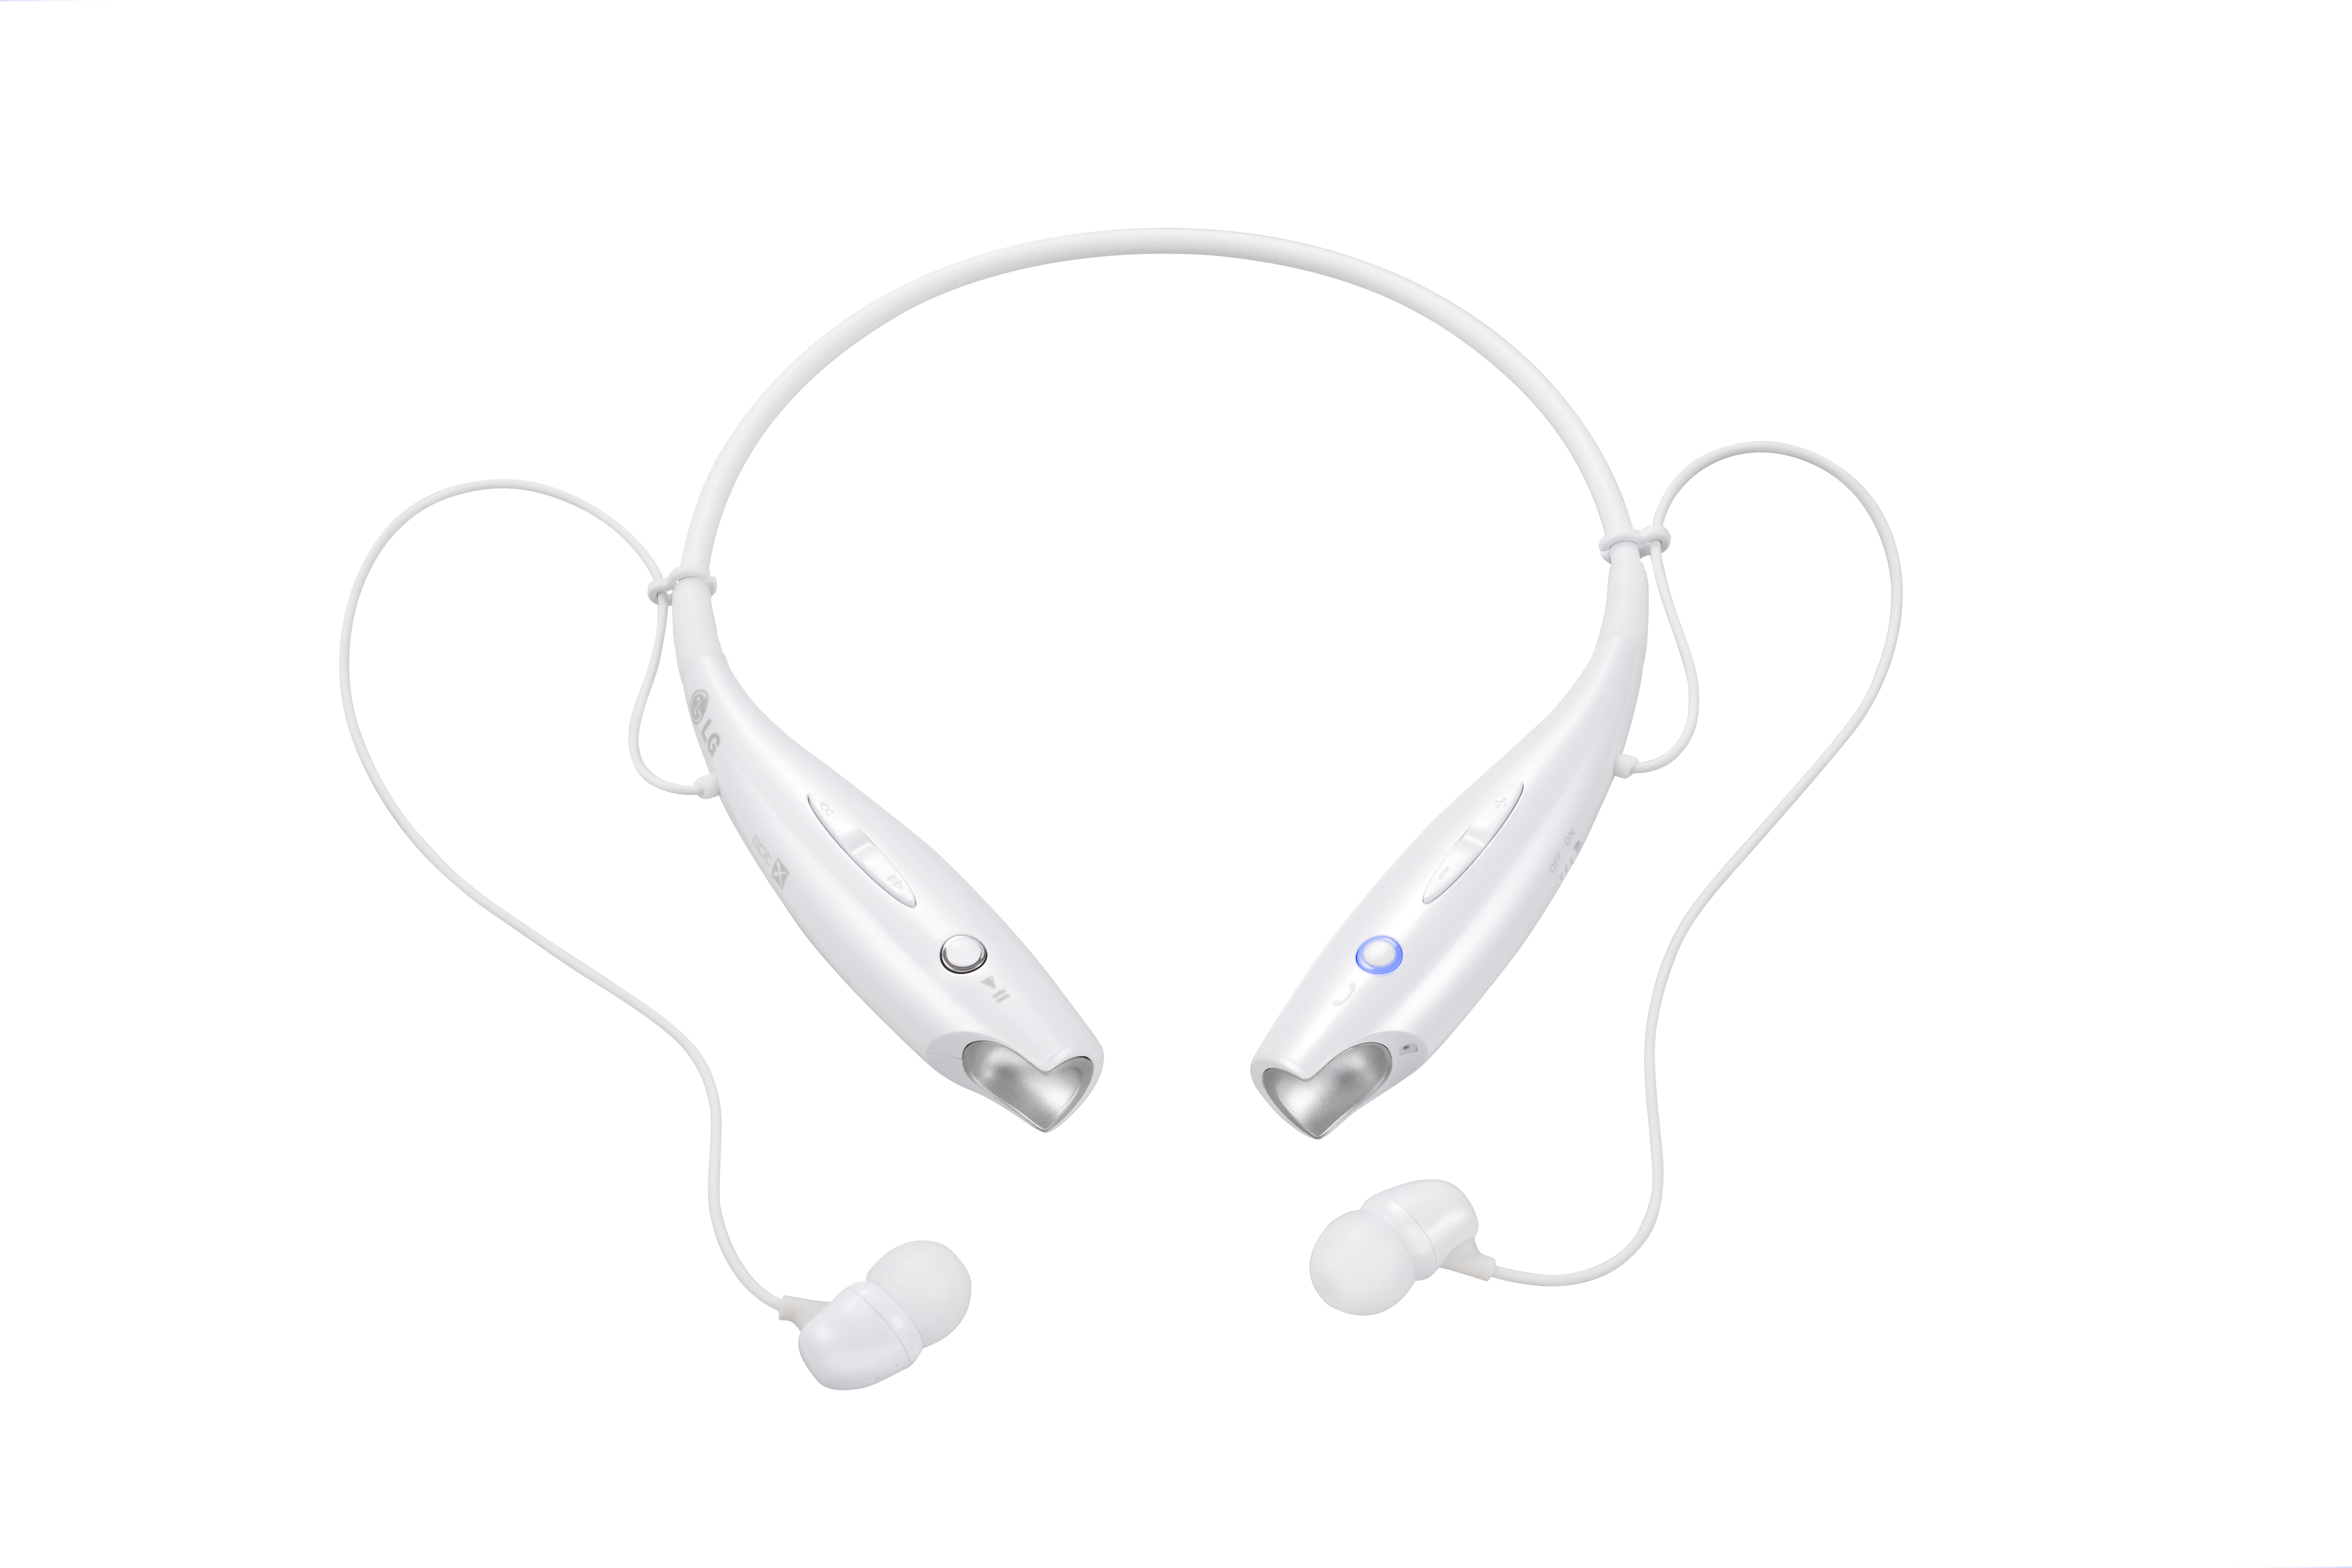 Front view of LG TONE+ in white